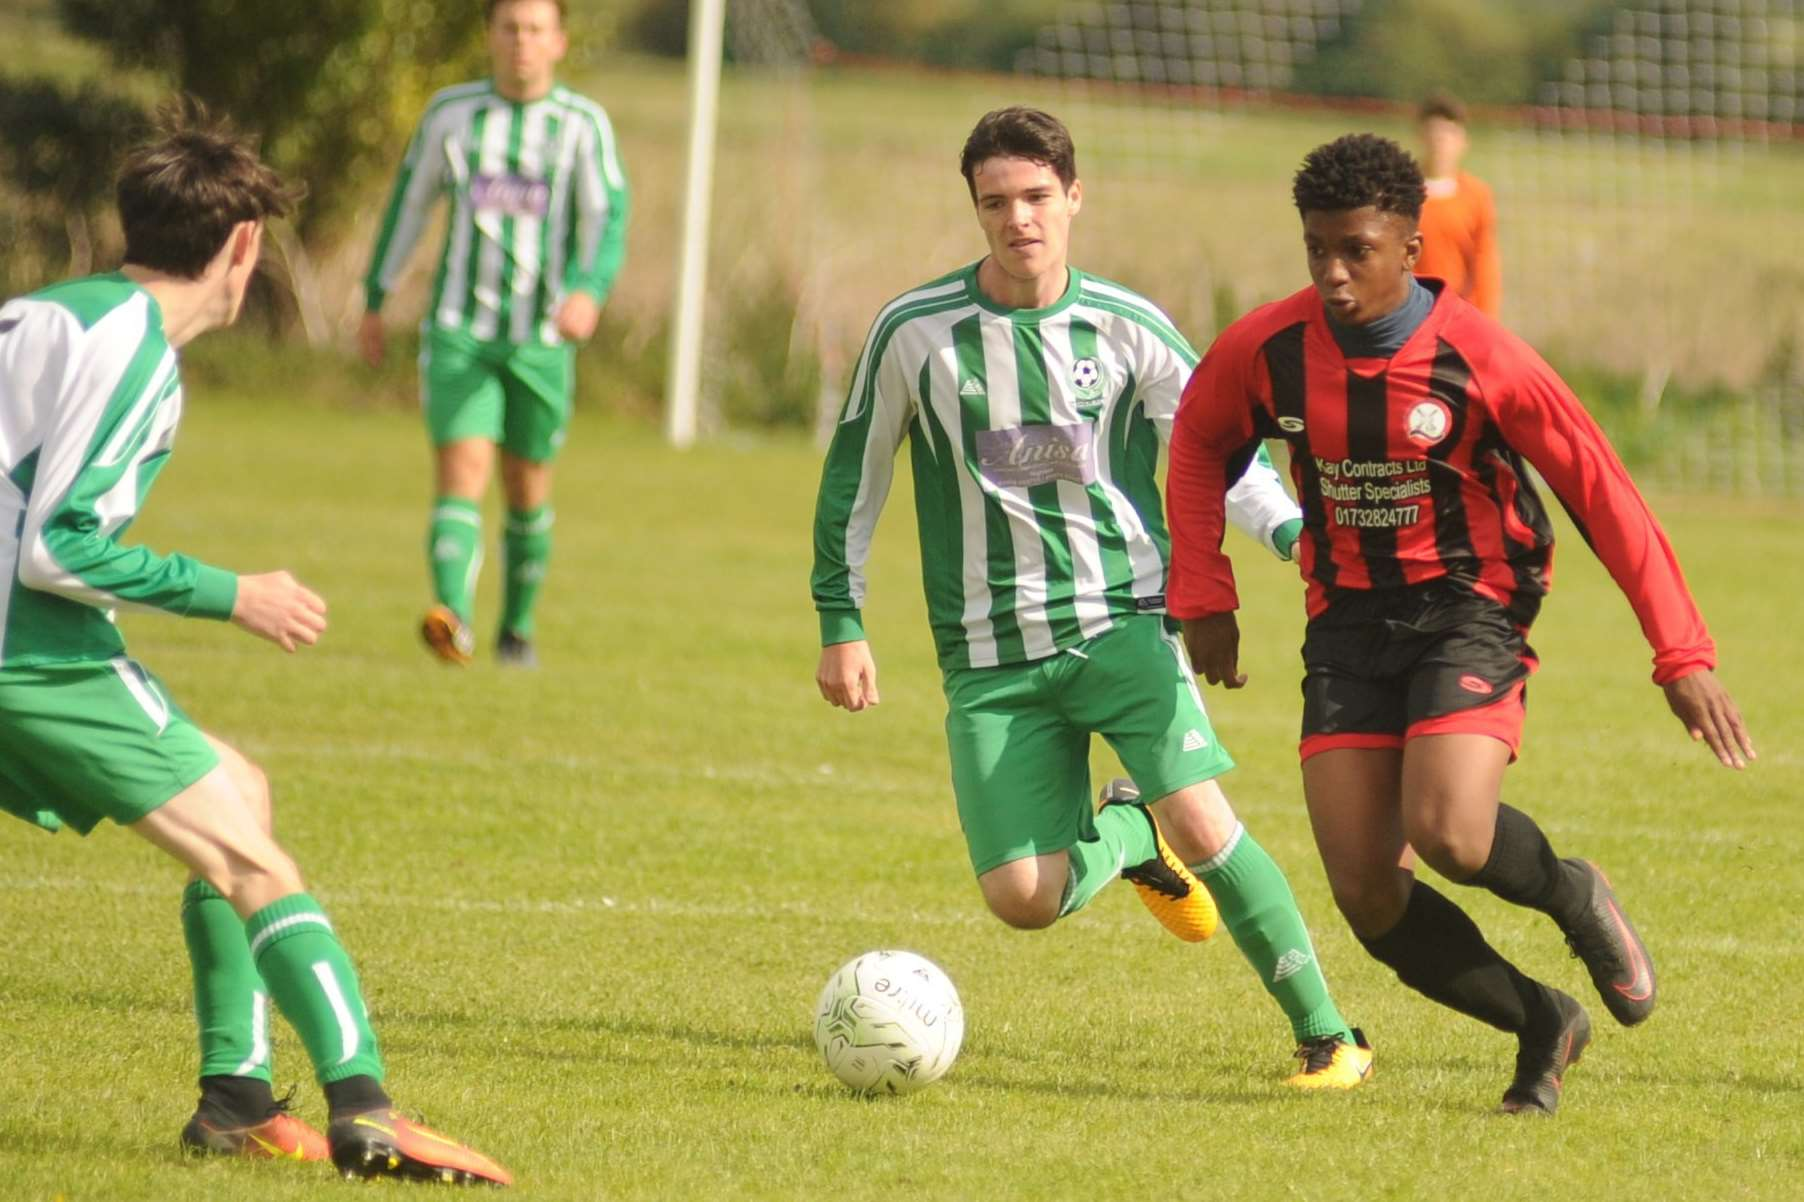 Meopham Colts Black under-18s (red) up against Eagles in the League Cup Picture: Steve Crispe